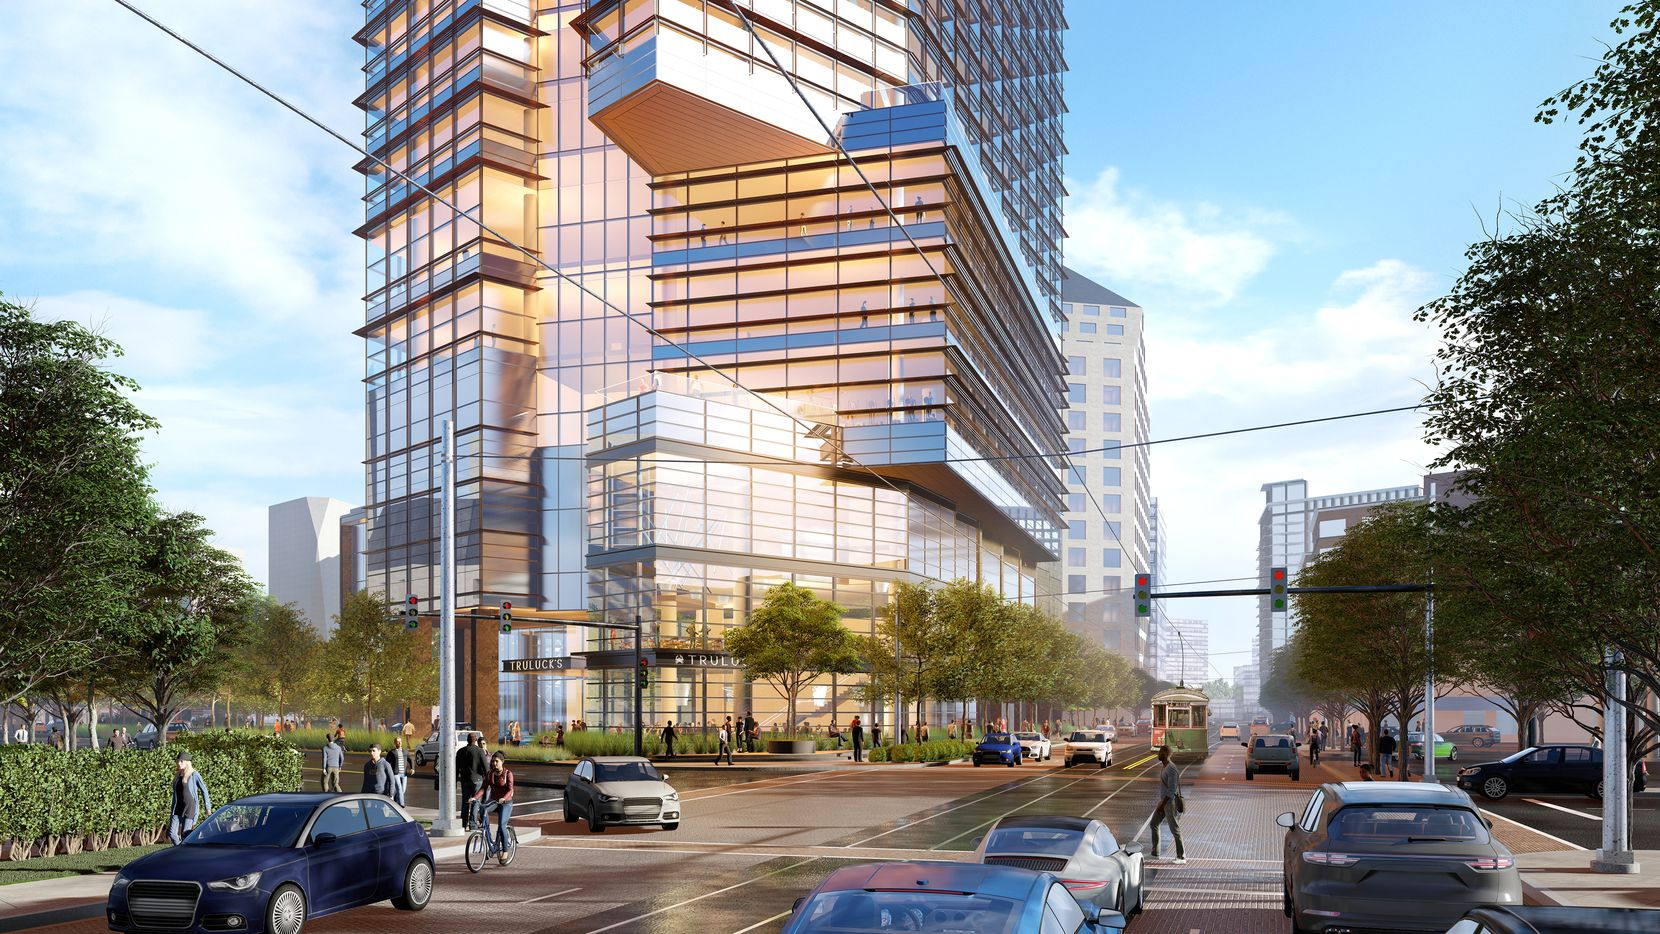 Architects Pickard Chilton and HKS designed the 27-story tower for the block at McKInney and Maple avenues.